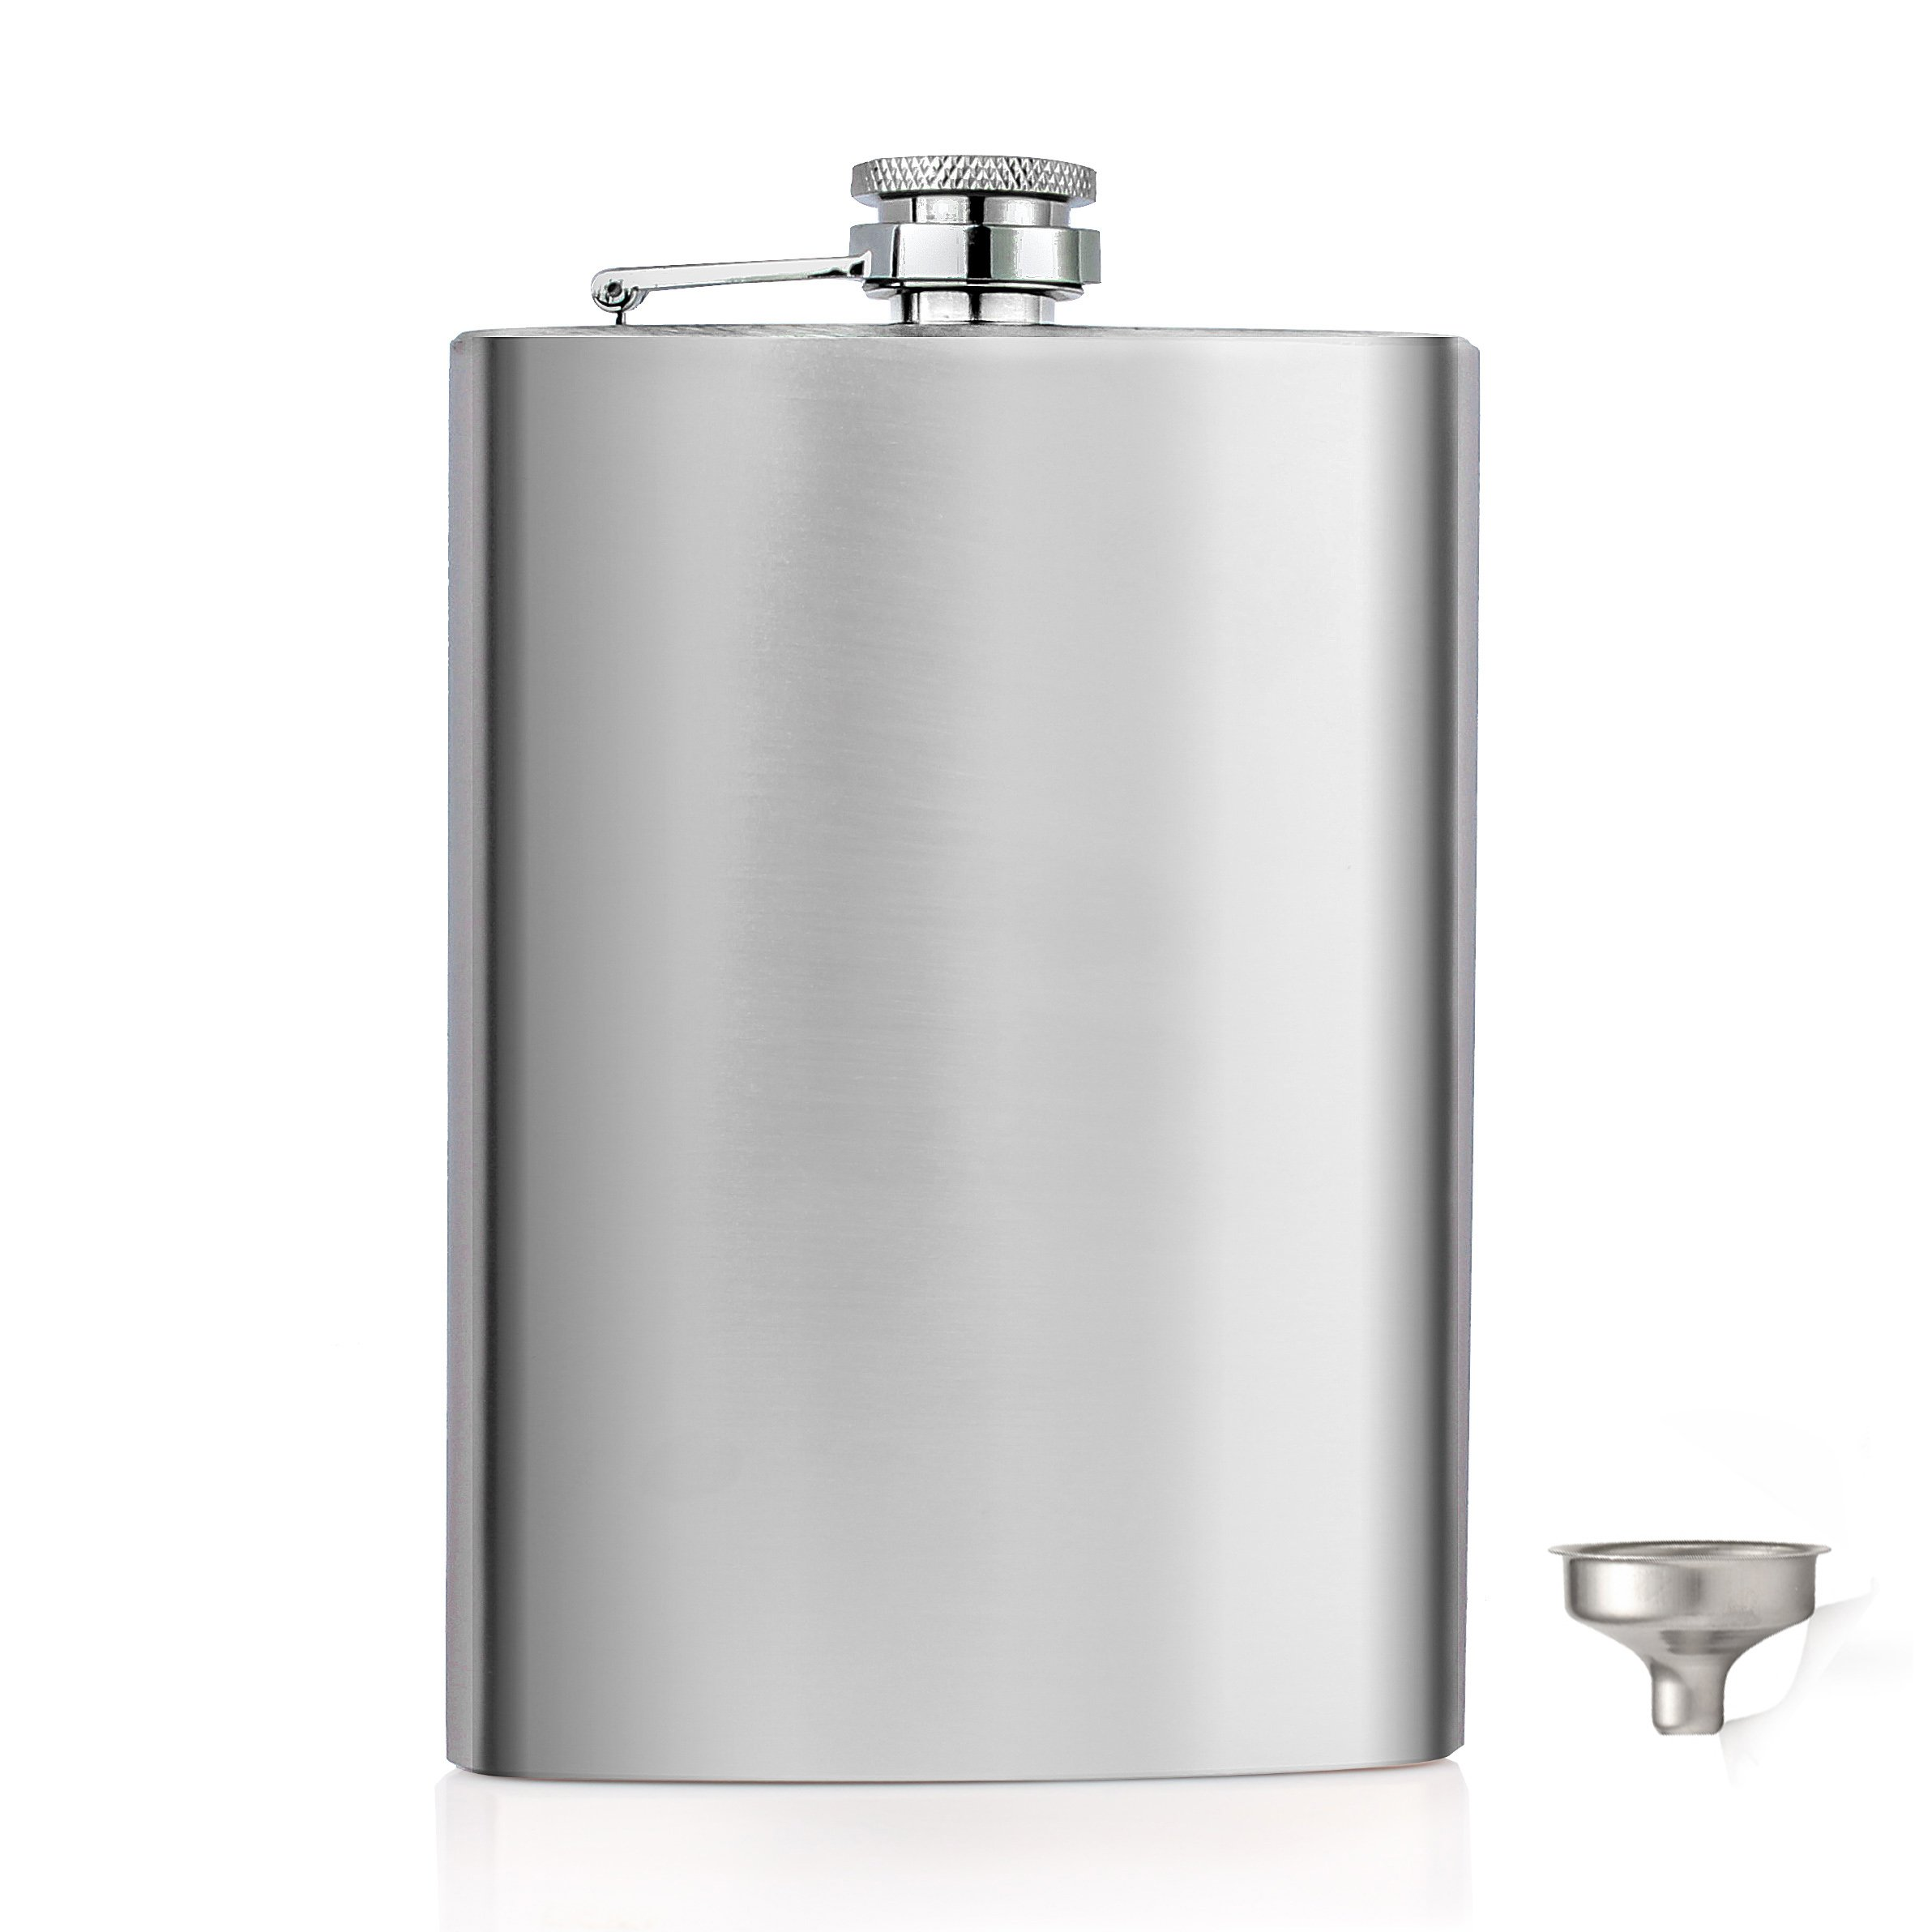 Menghao 10 oz Steel Stainless Hip Flask Silver Free Funnel Liquor Drinking of Alcohol Whiskey Gift for Men